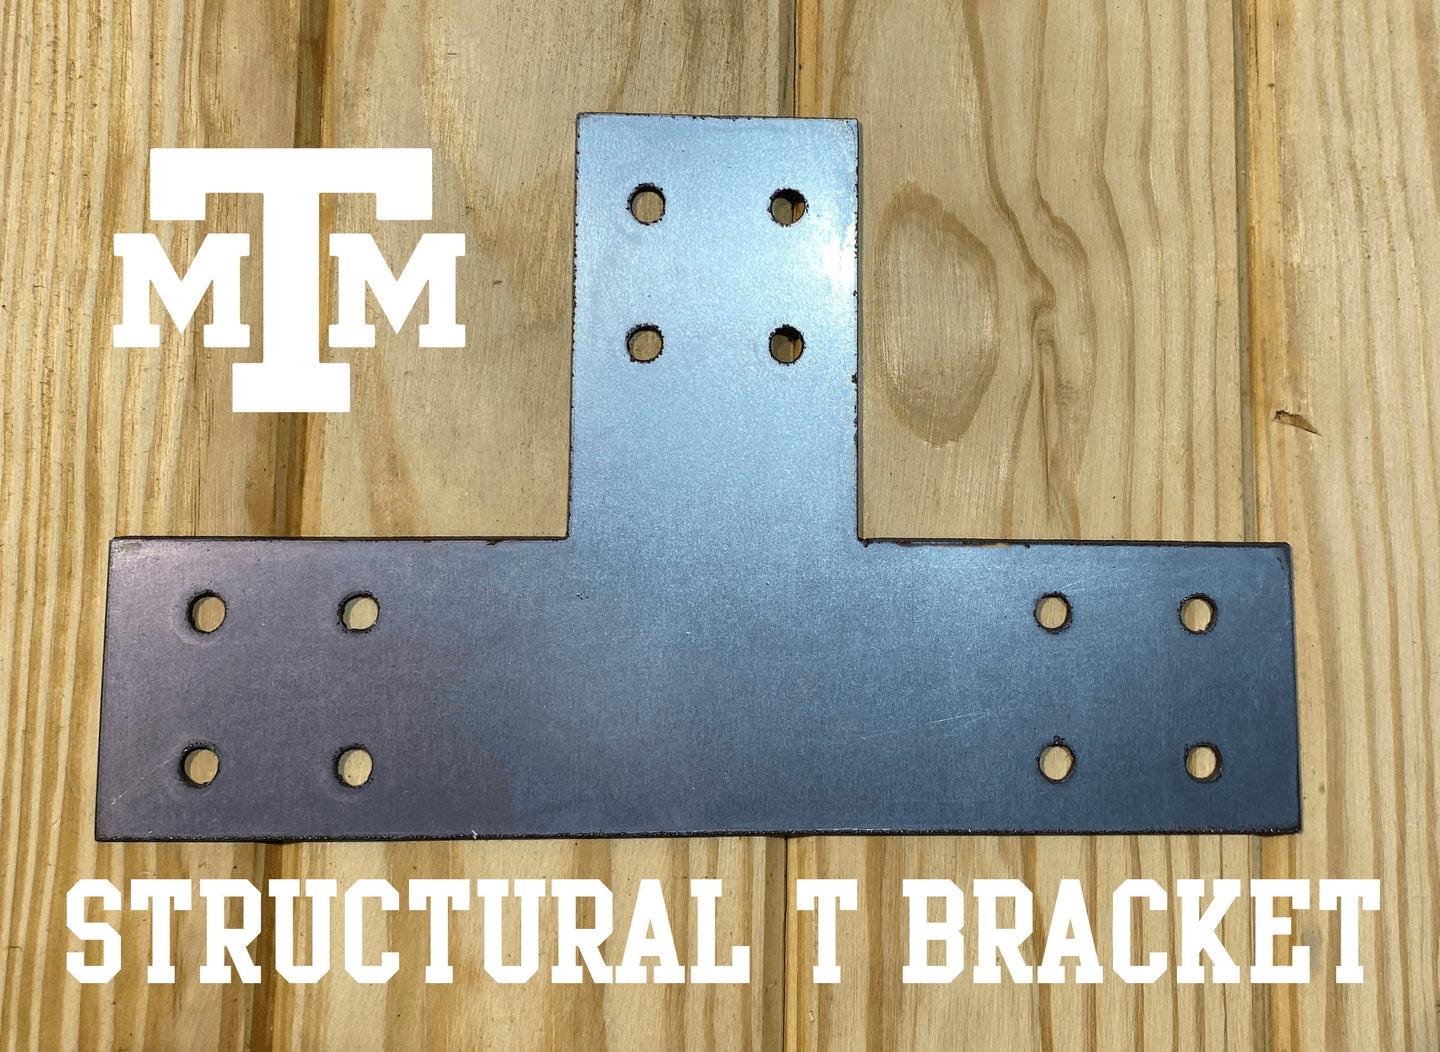 Structural Design T Bracket for 4x4 Post, 4 Inch T Bracket Bolt Plate, T Support Bracket, Steel Bracket, 4 inch, Center Bracket, Truss Plate